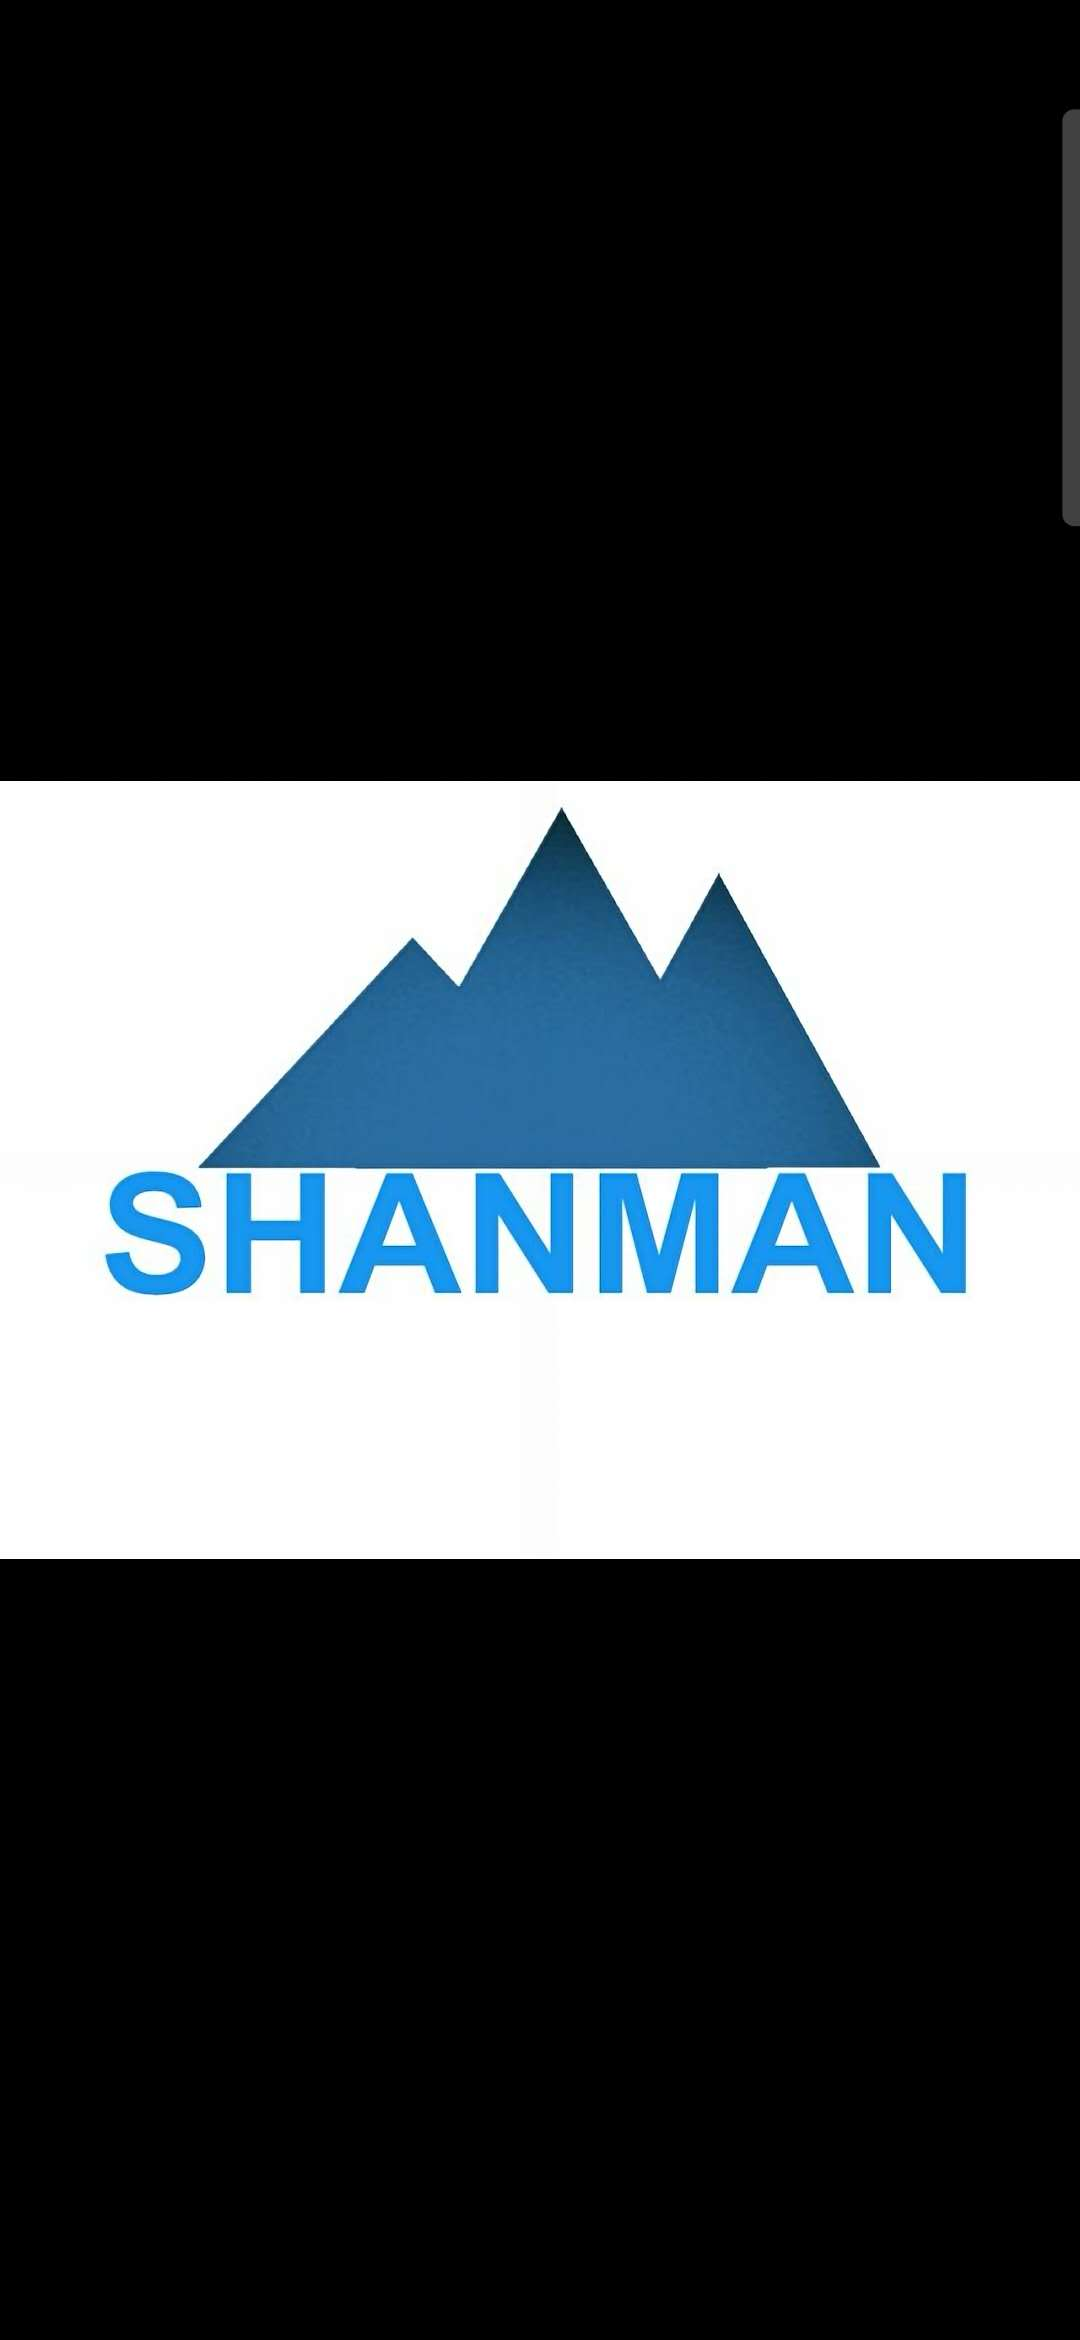 shanman machinery co., ltd. logo